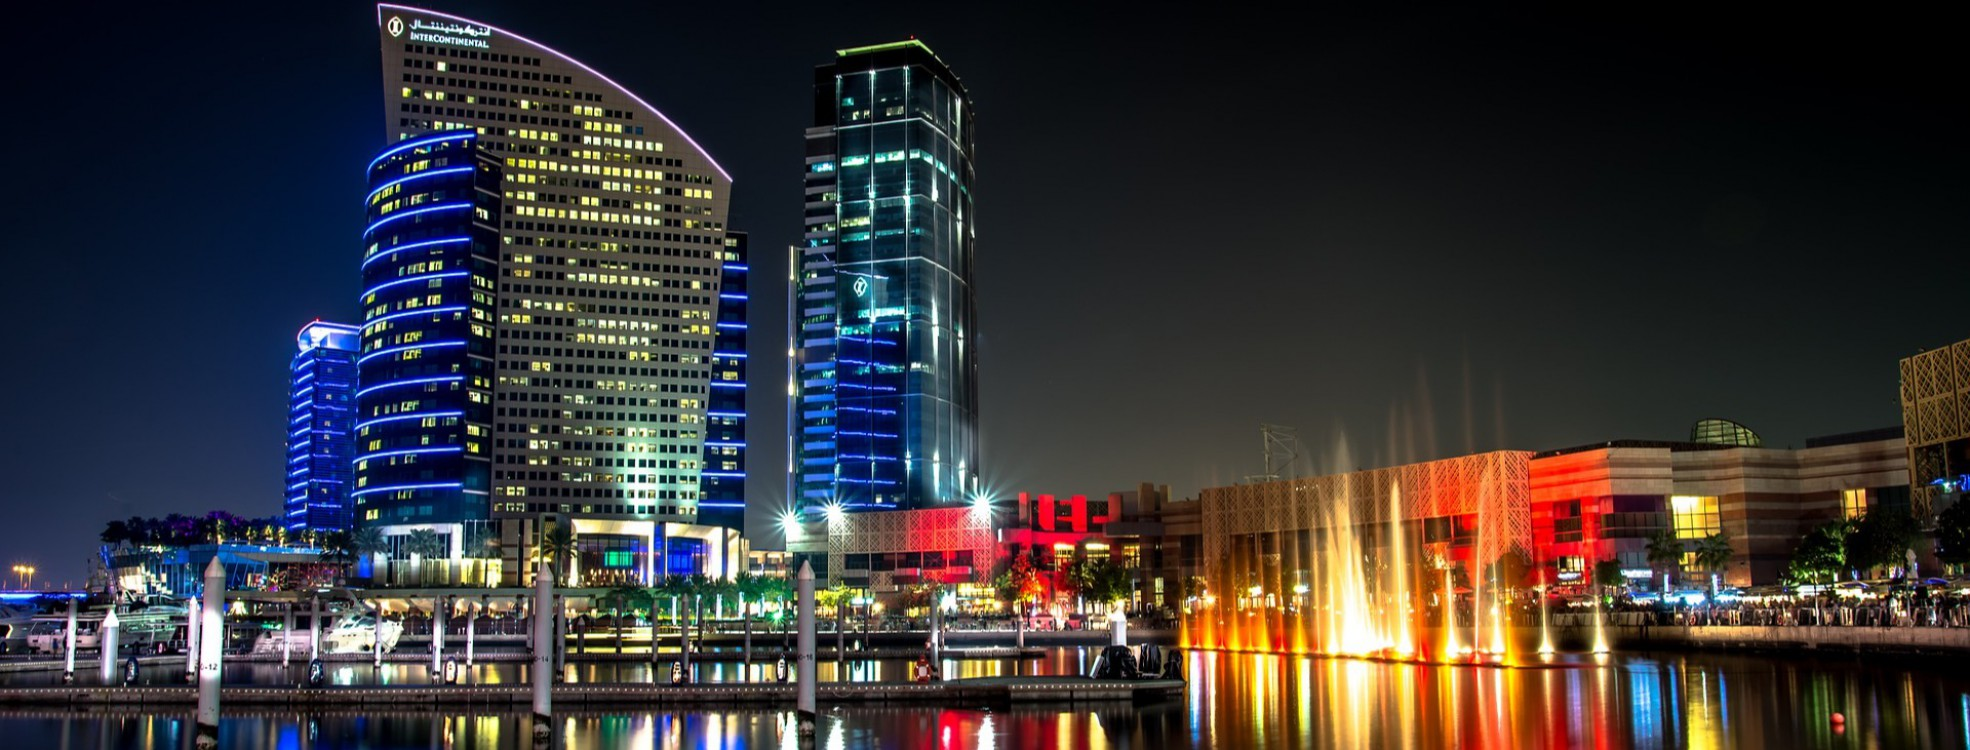 4 Nights Dubai Holiday Packages 2021